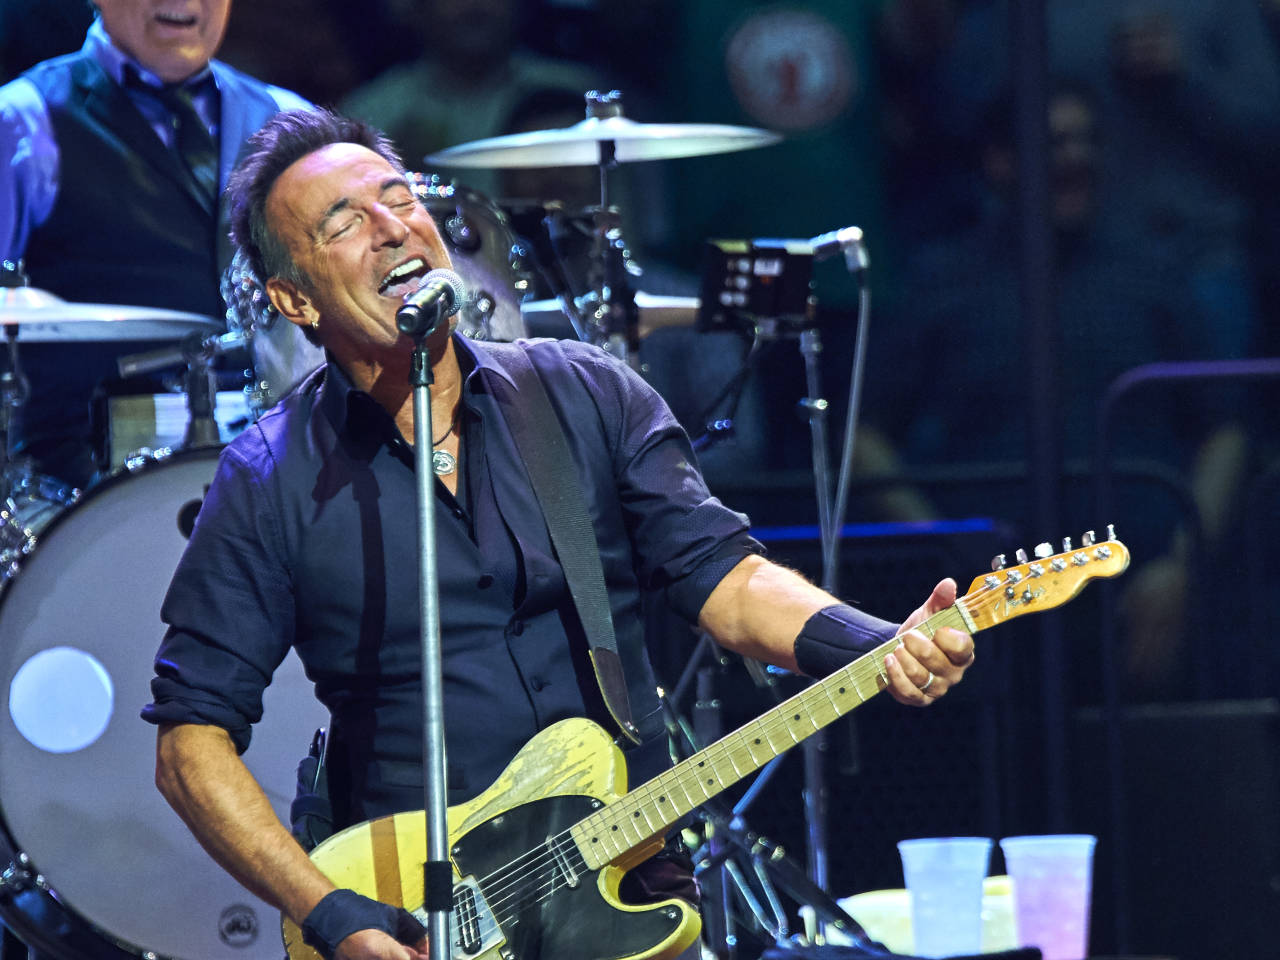 bruce springsteen s north carolina concert cancellation in support of lgbt rights 6 other times. Black Bedroom Furniture Sets. Home Design Ideas